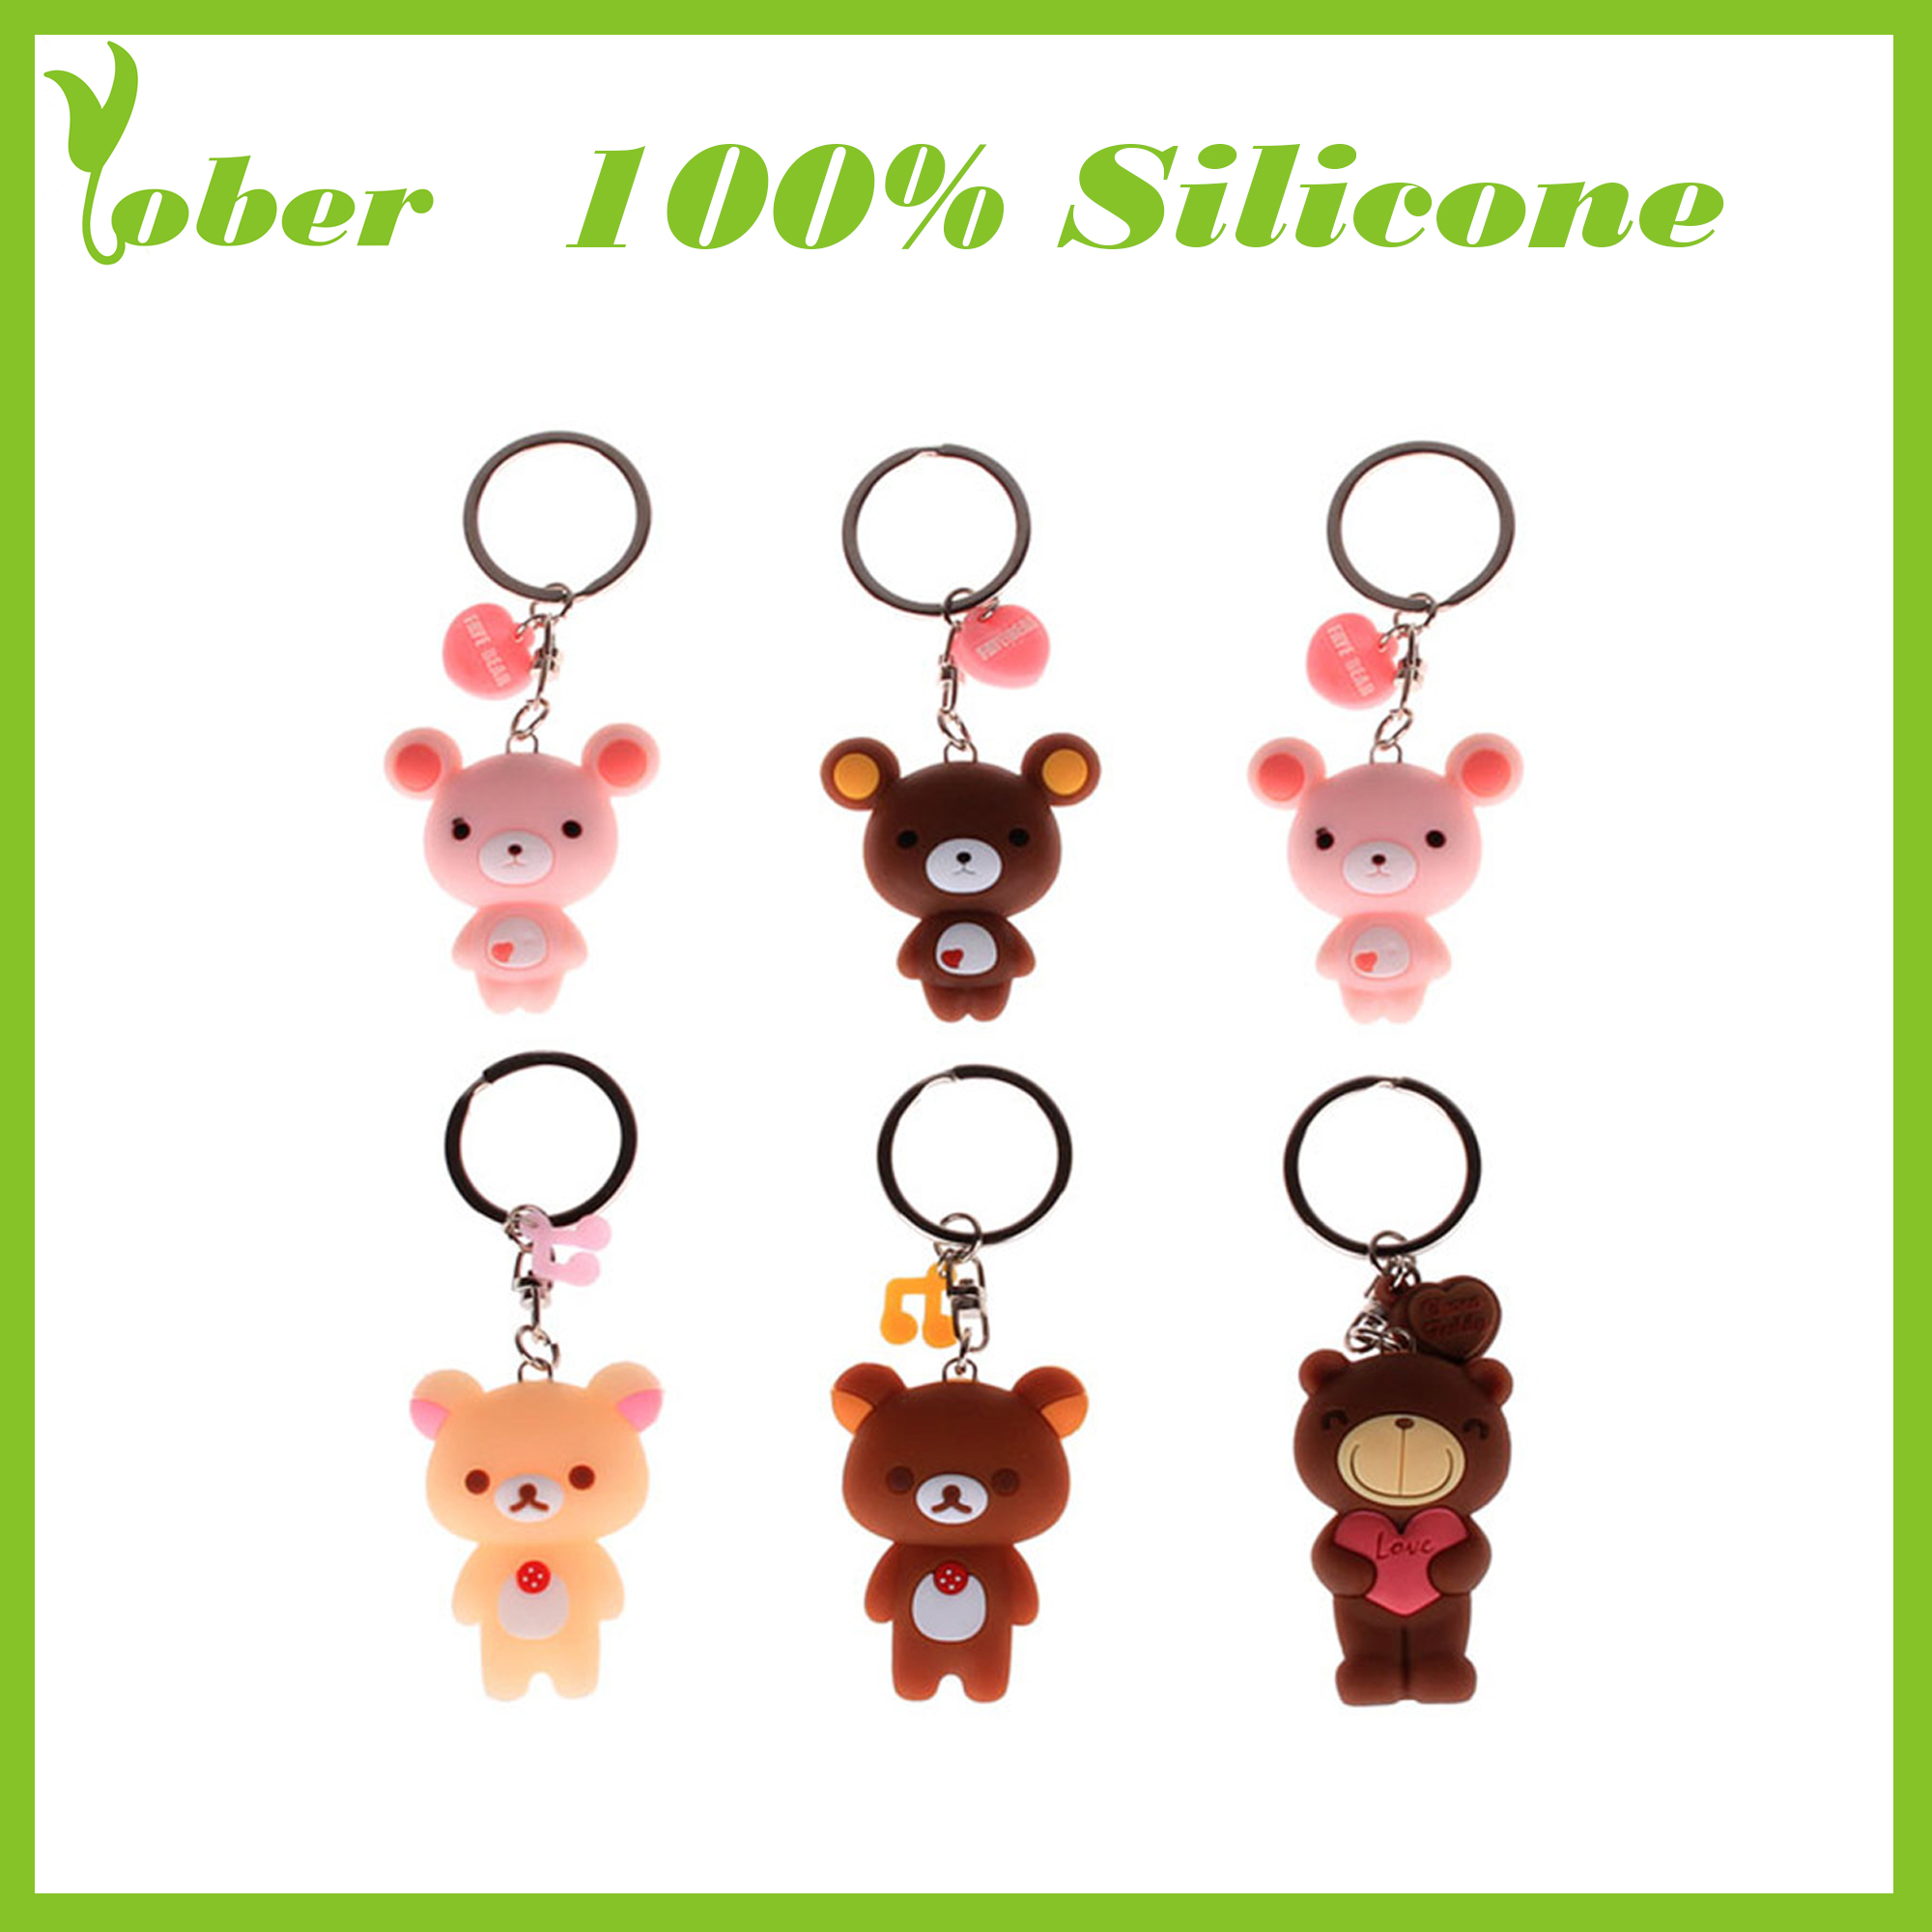 100% Silicone KeyCoin Case Silicone Keychains